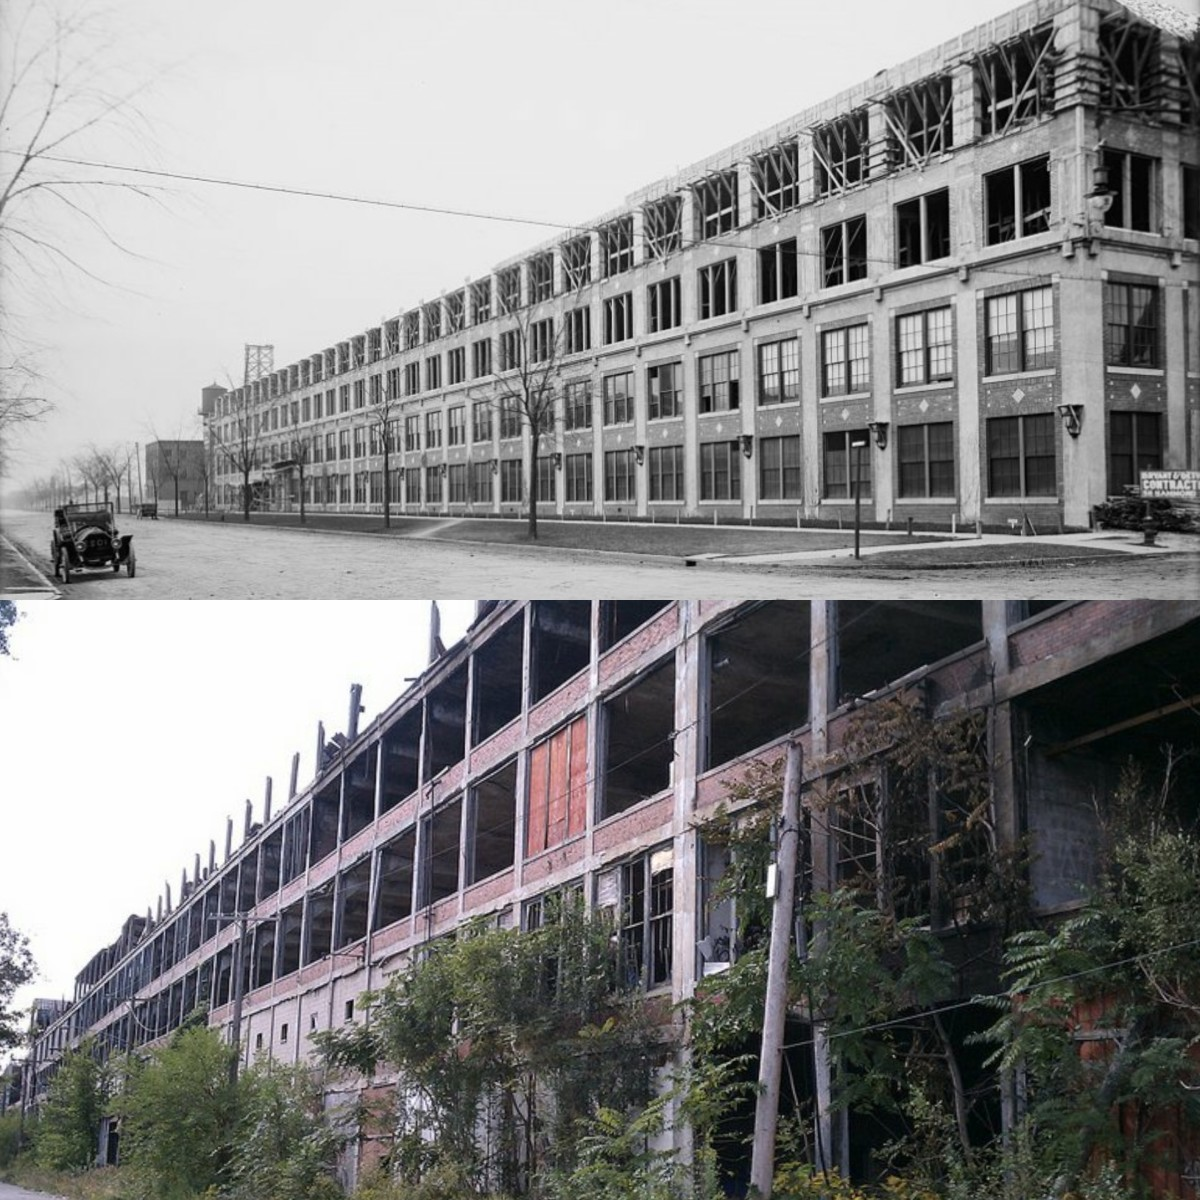 The Packard Factory in 1904 vs. 2012.